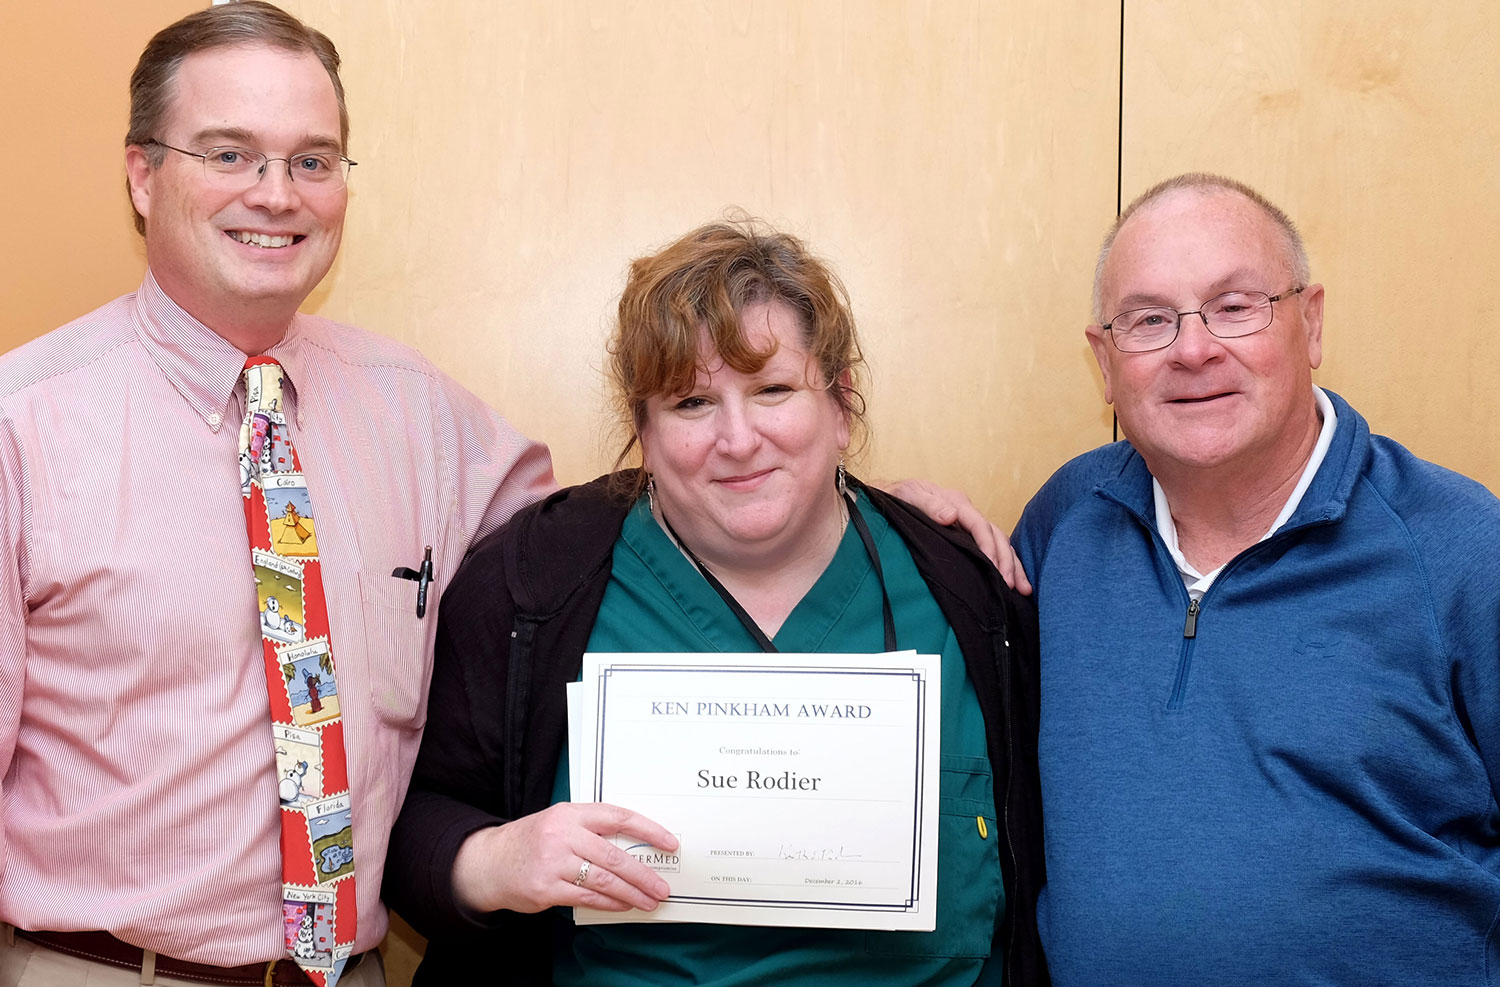 Sue Rodier of Internal Medicine poses with Randy Barr, M.D., left, and Ken Pinkham, after receiving the 2016 Ken Pinkham Award.